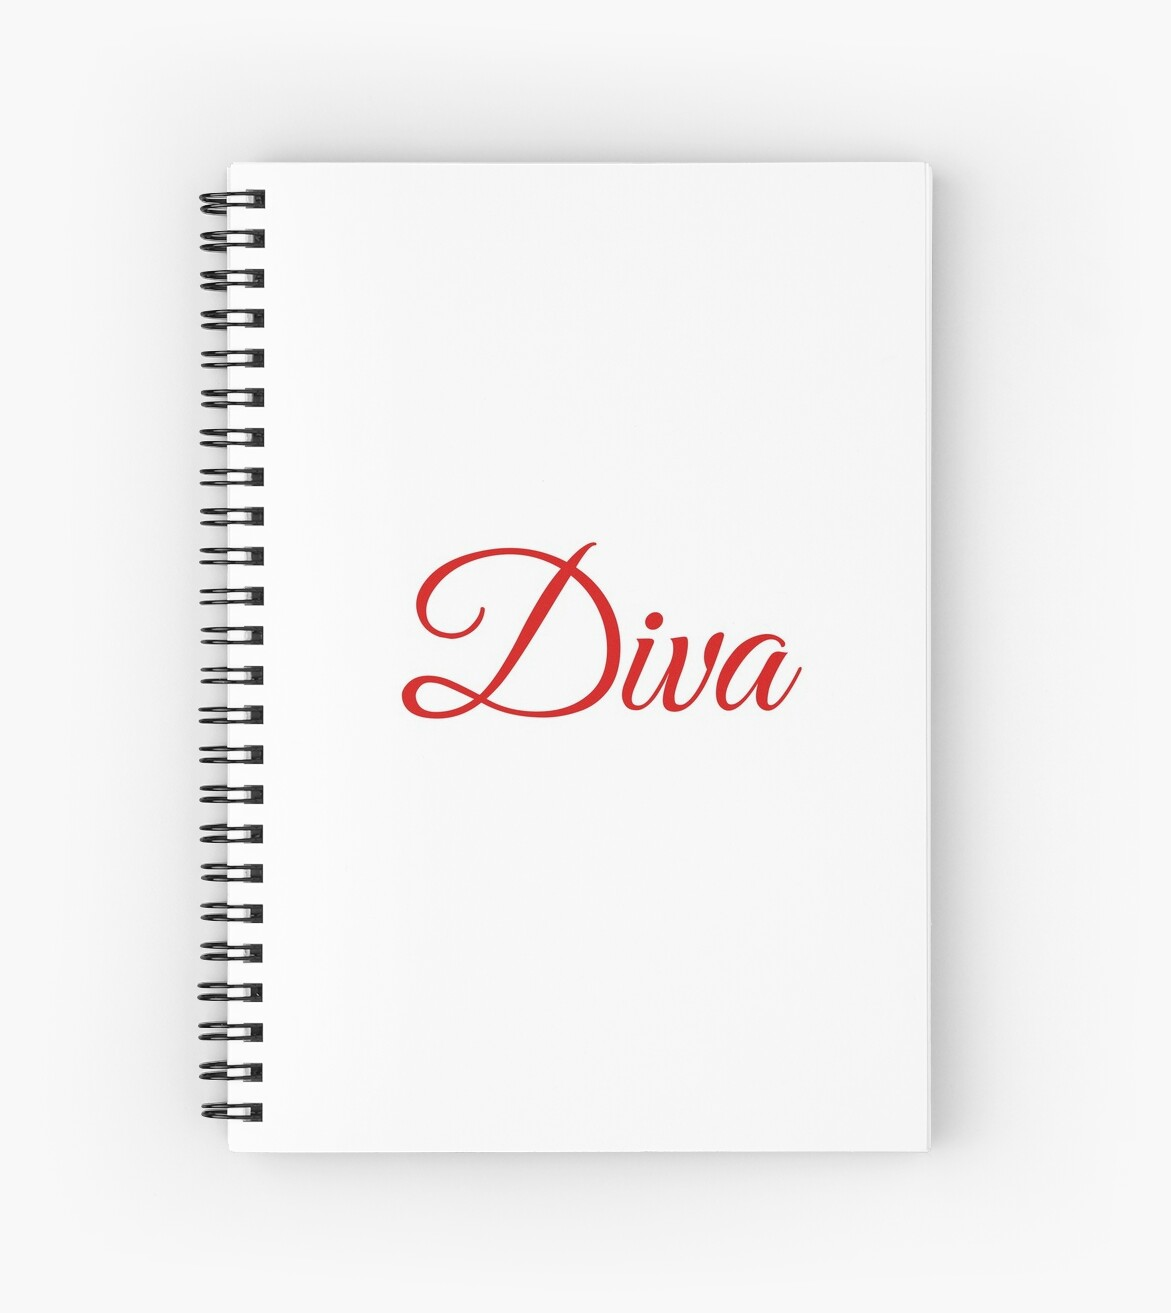 Diva by Tiare Smith